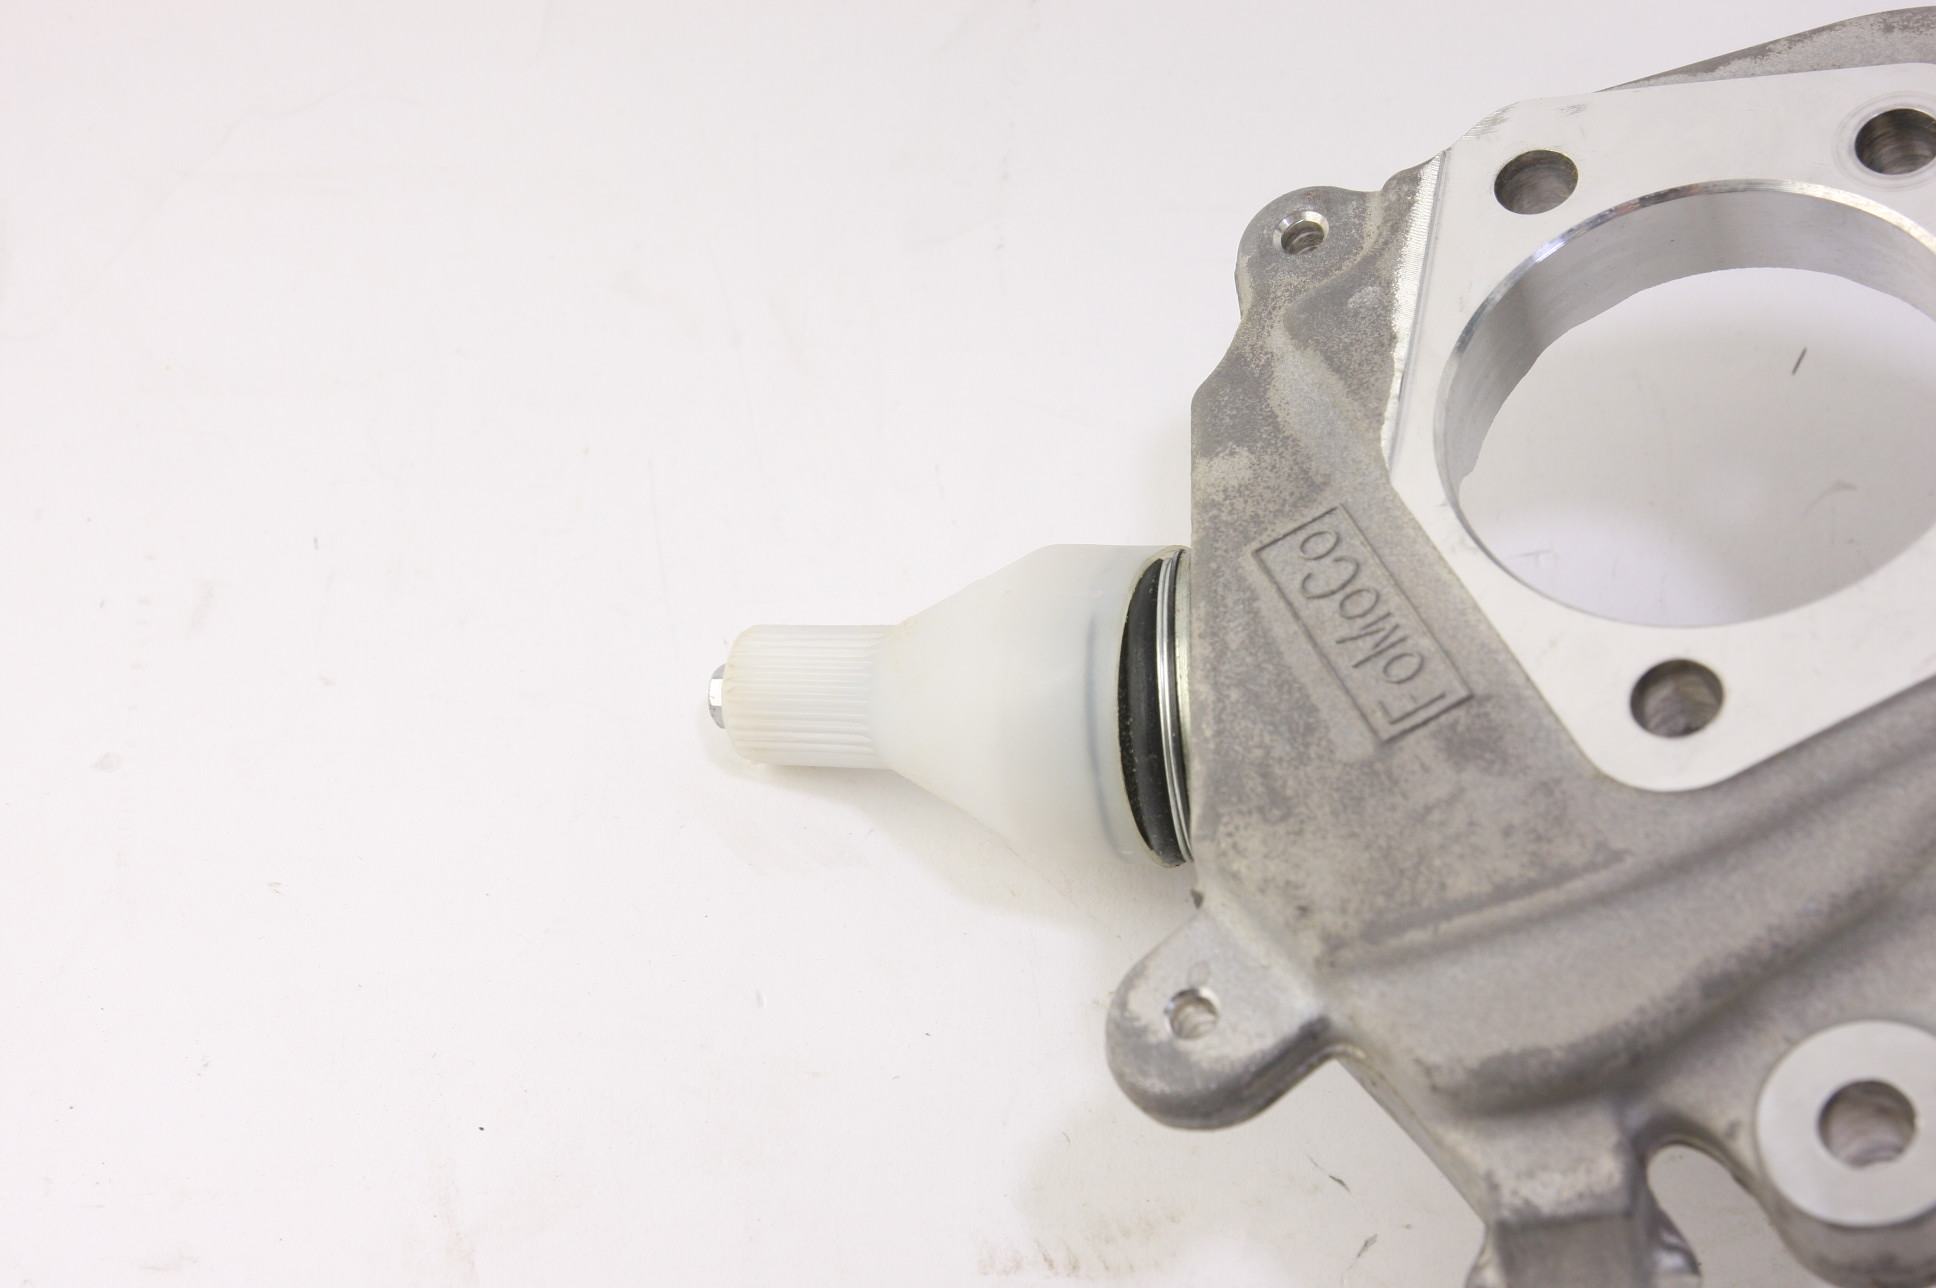 * New OEM Motorcraft MEF70 Steering Knuckle Front Left Ford 4W4Z3K186BA - image 6